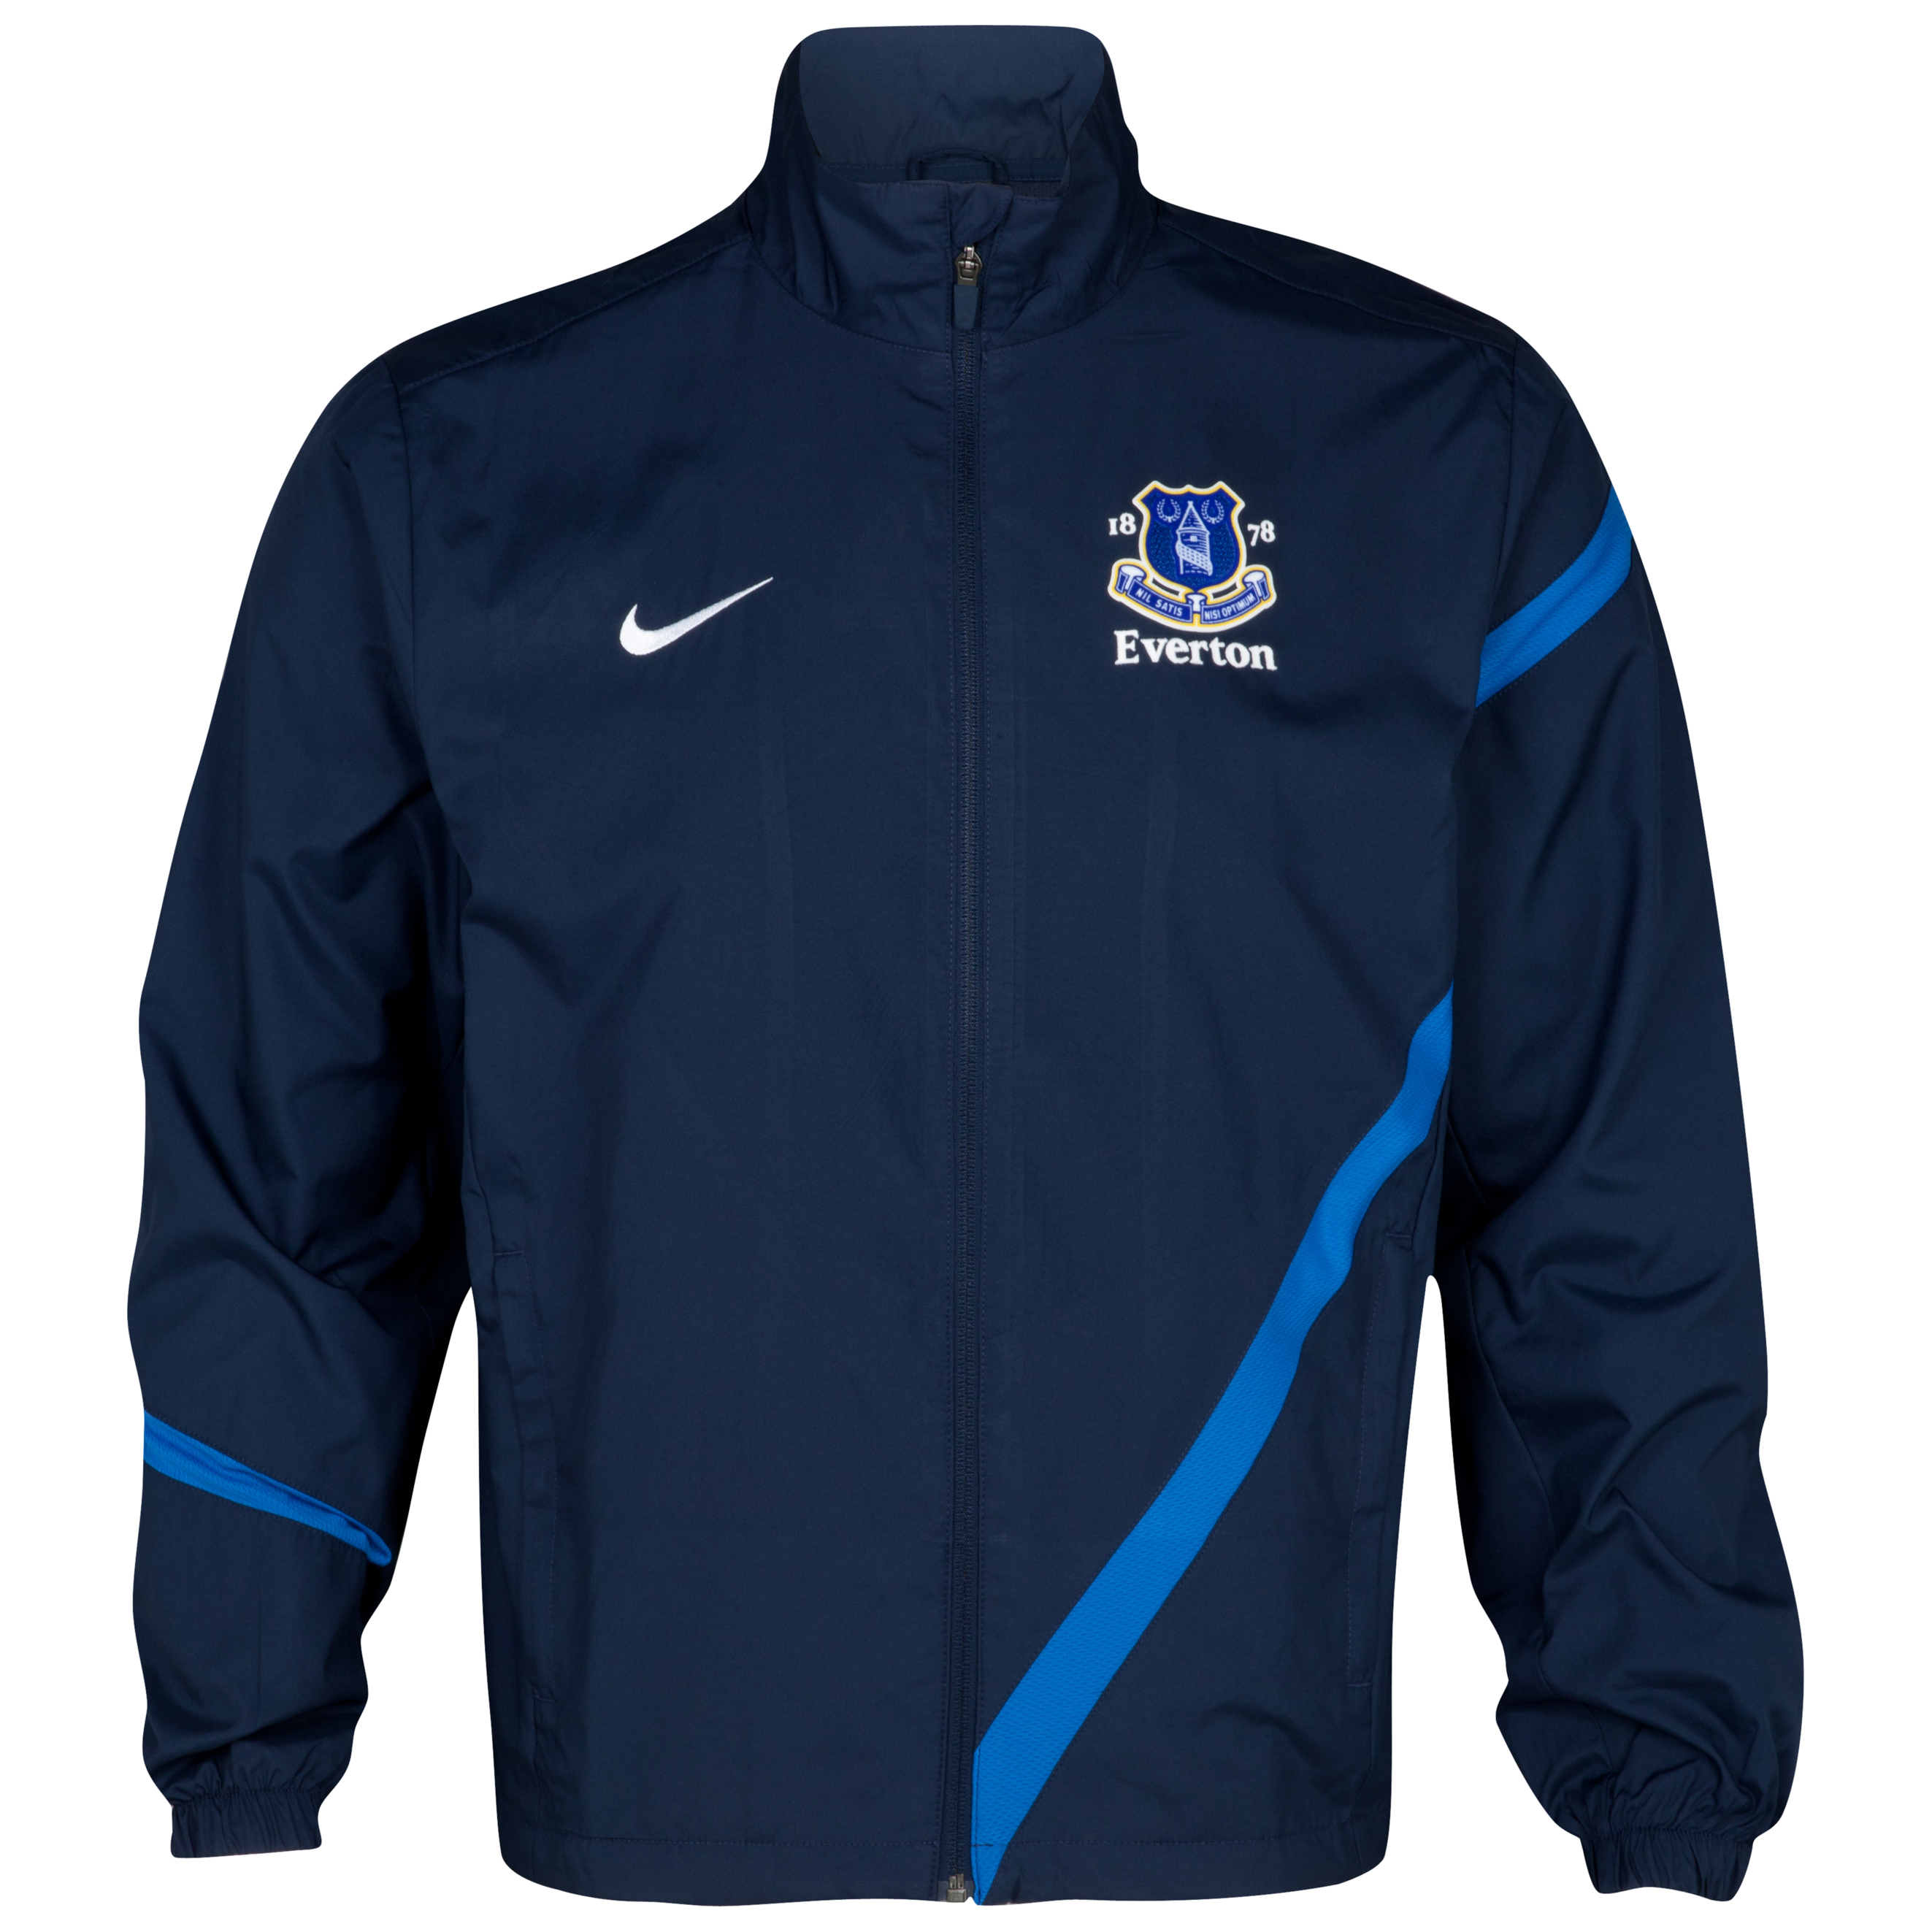 Everton Sideline Track Jacket - Obsidian/Royal Blue/White